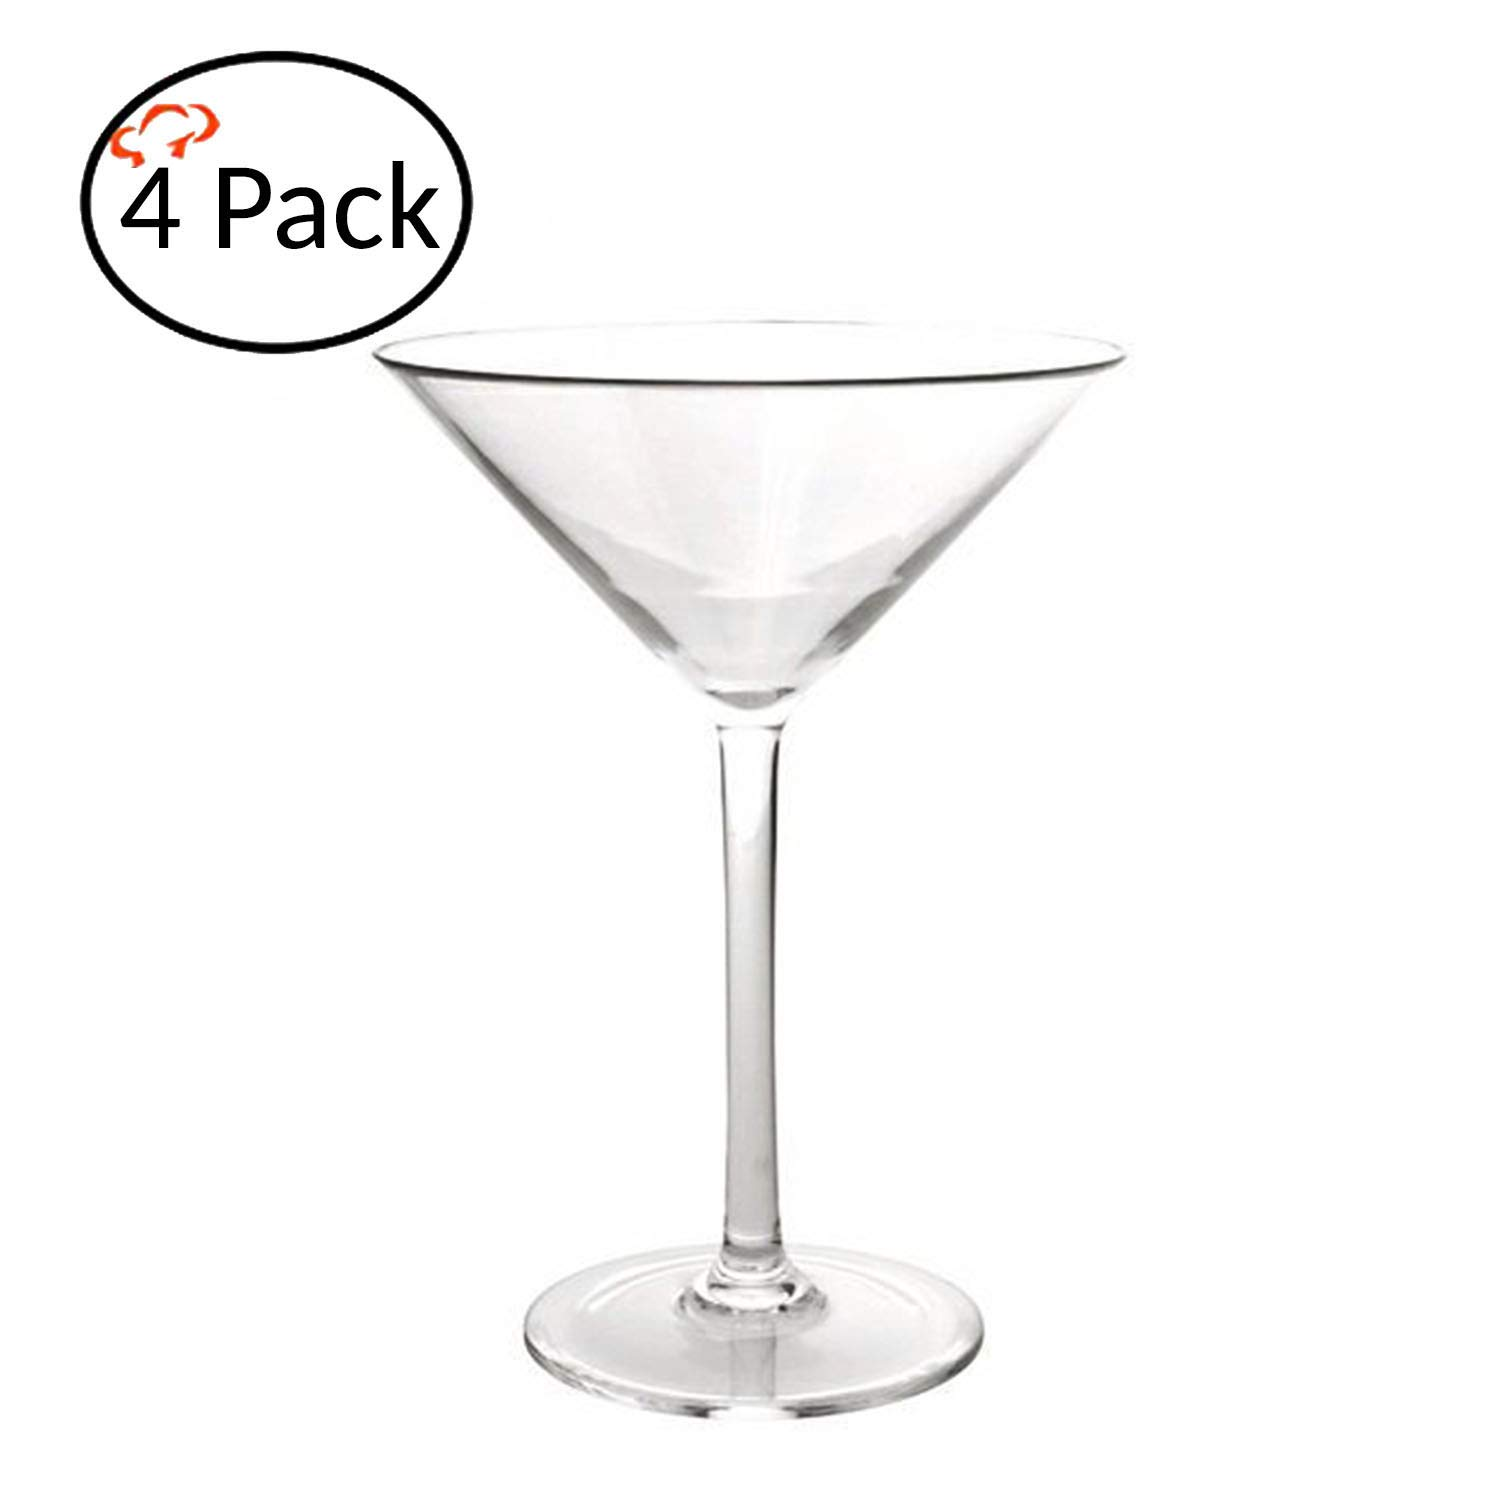 Tiger Chef Polycarbonate Drinking Glasses (4 Pack, Martini 8 Oz)